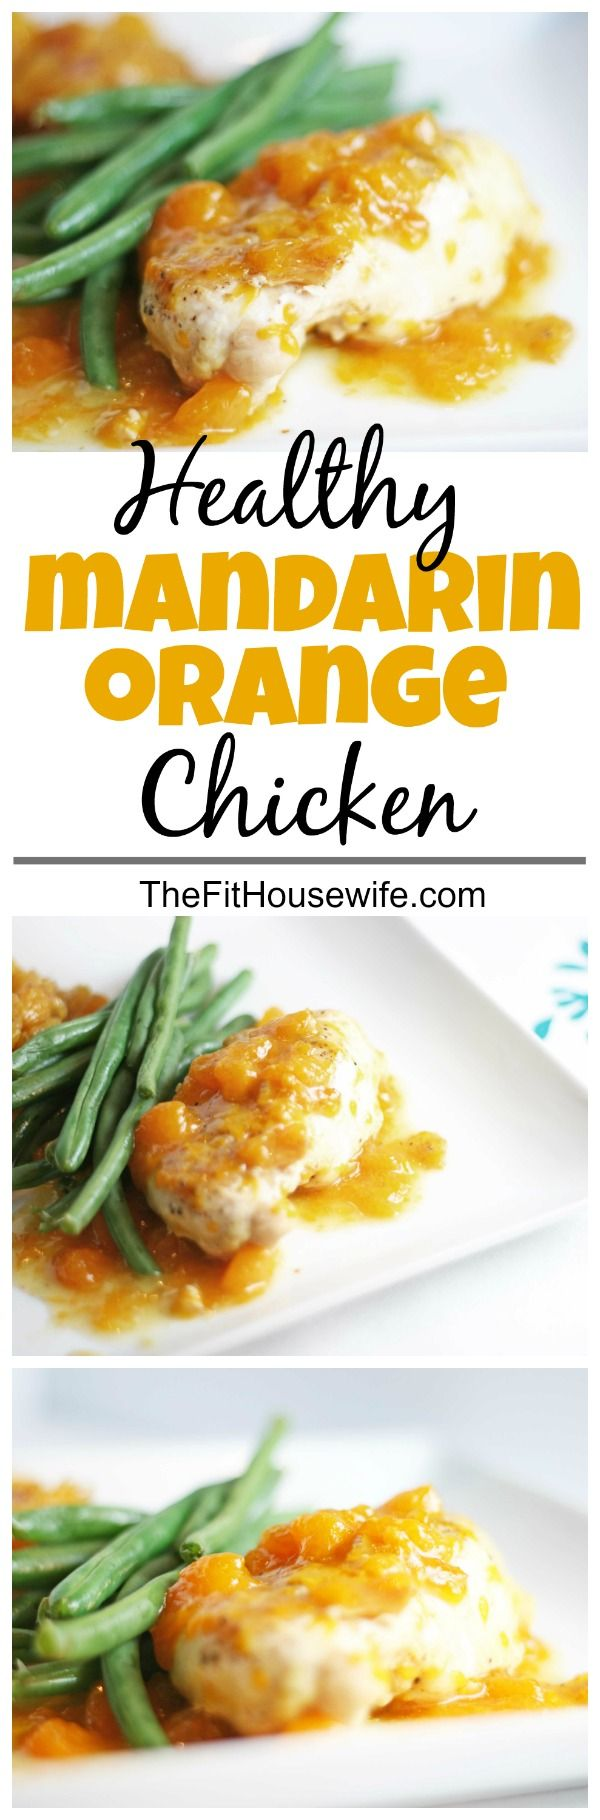 Mandarin Orange Chicken. A simple, healthy, and delicious meal. Perfect for a quick weeknight dinner.